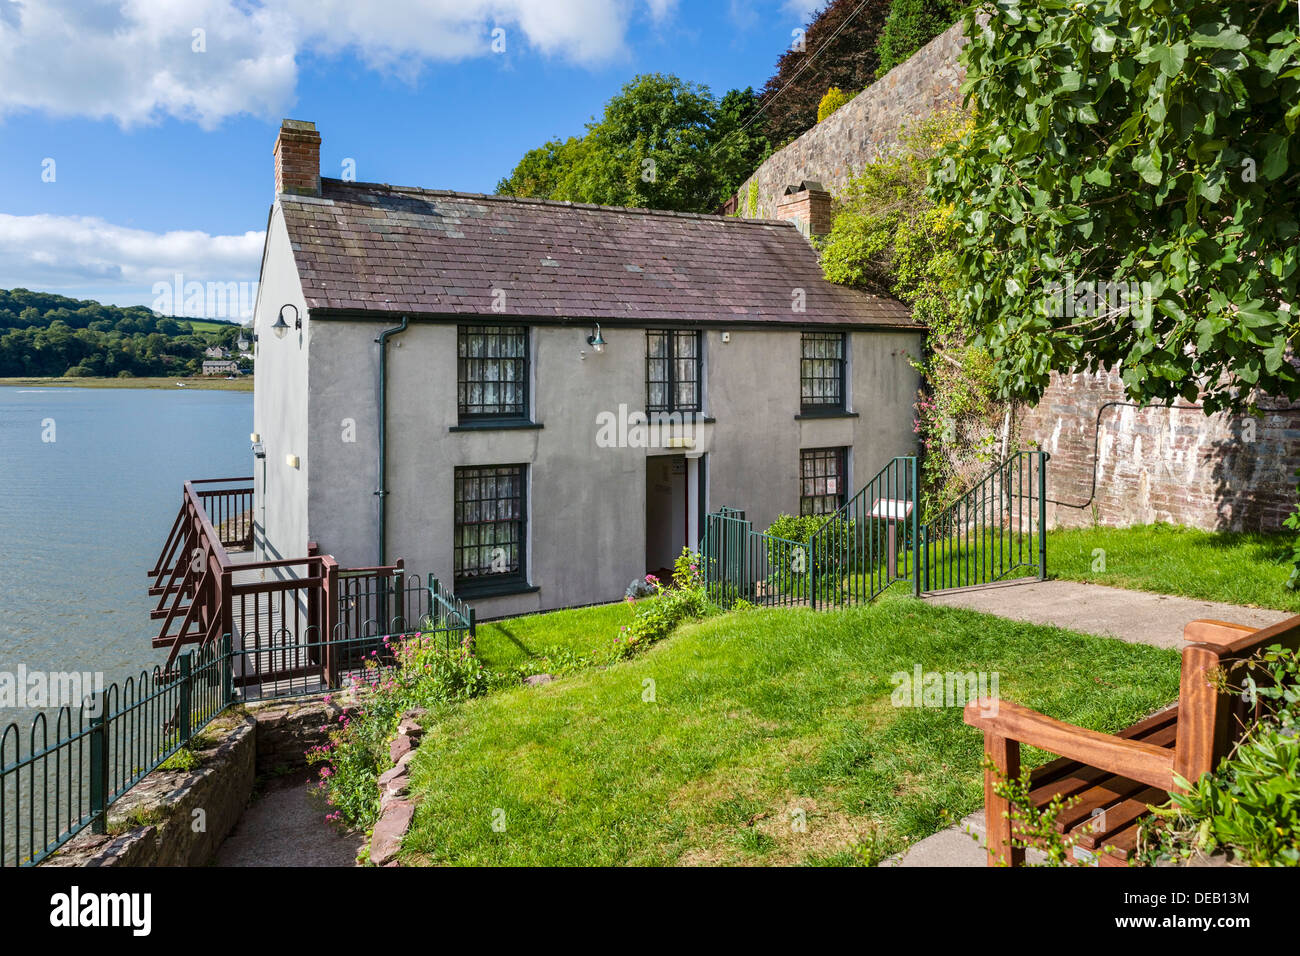 The Boathouse, the poet Dylan Thomas's former home in Laugharne, Carmarthenshire, Wales, UK - Stock Image